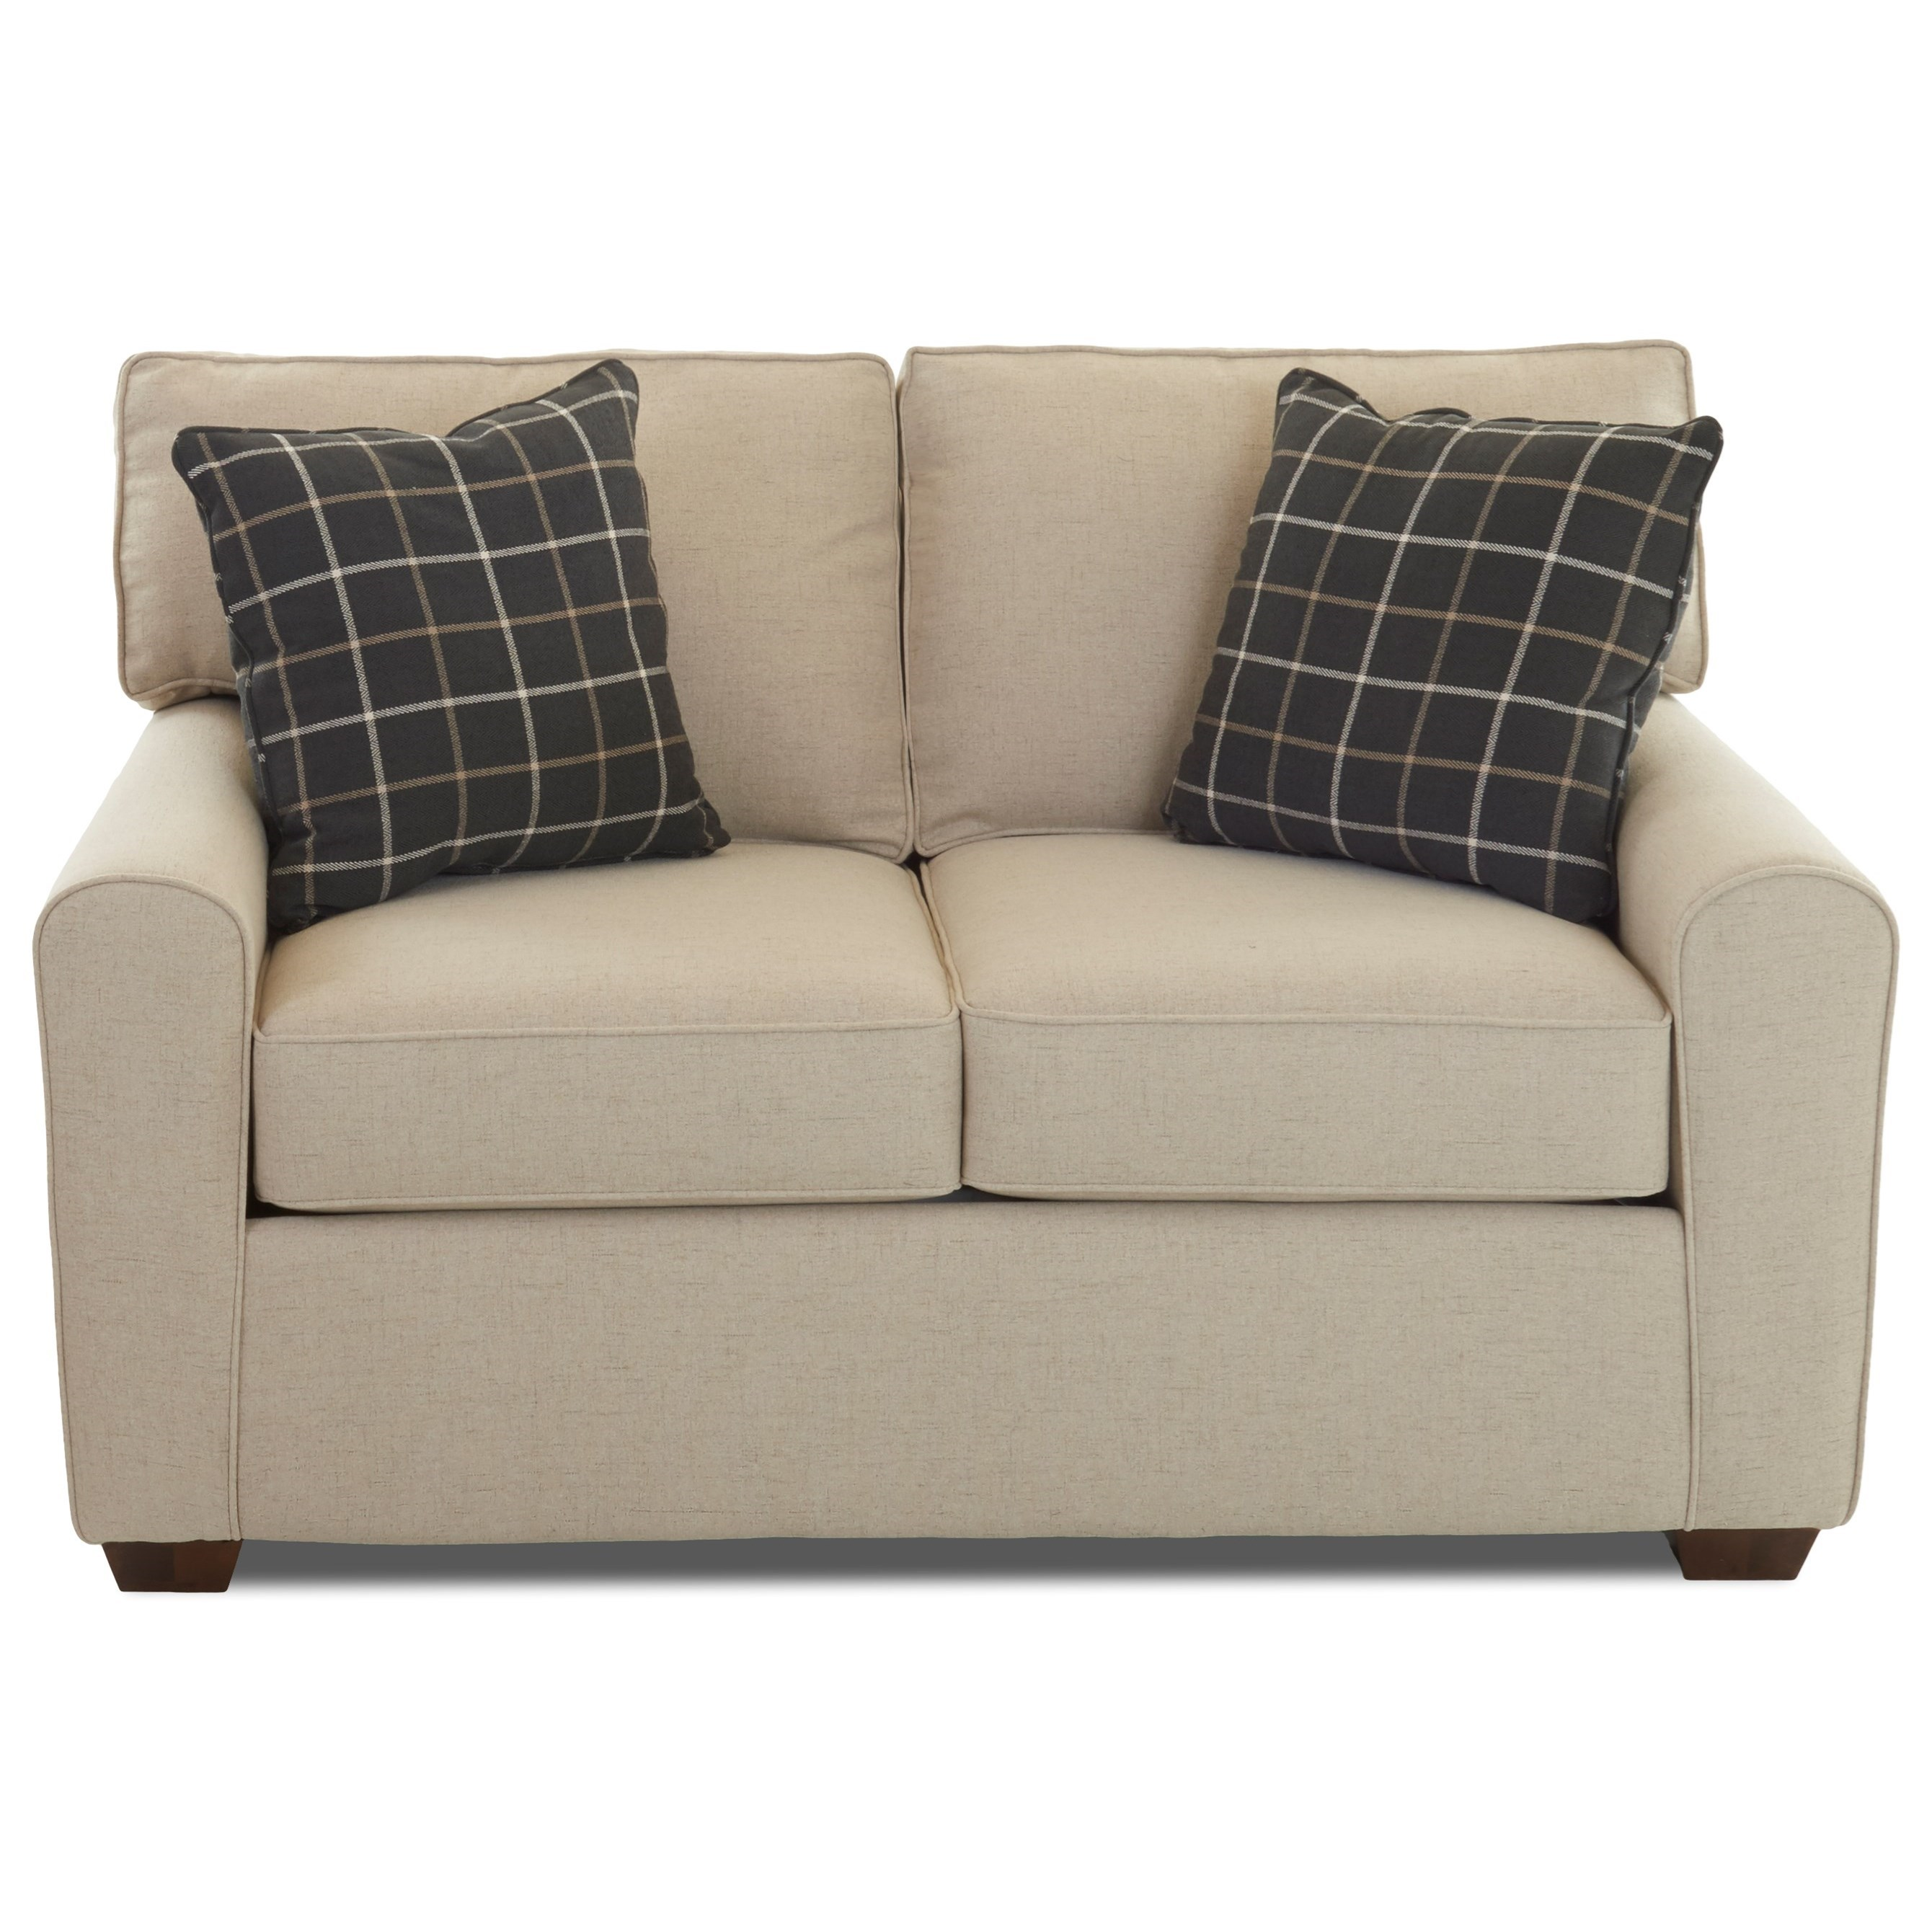 Hybrid Loveseat w/ Box Cushions by Klaussner at Northeast Factory Direct